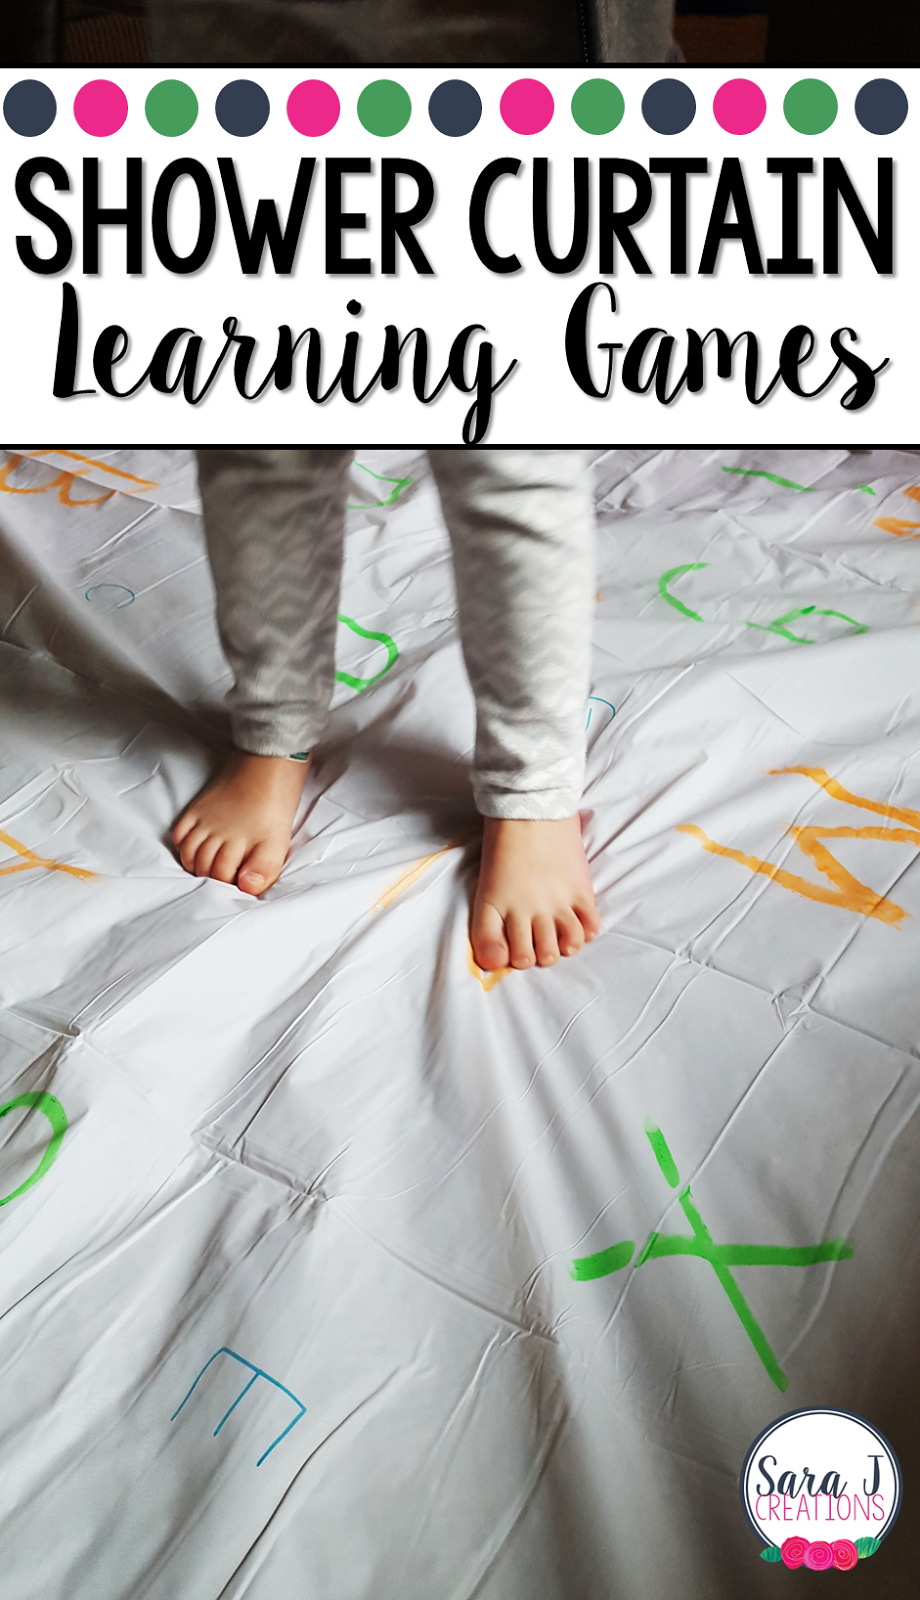 Create learning games on giant shower curtains with these easy directions and ideas. Perfect for ABCs, numbers, sight words, math problems and more.